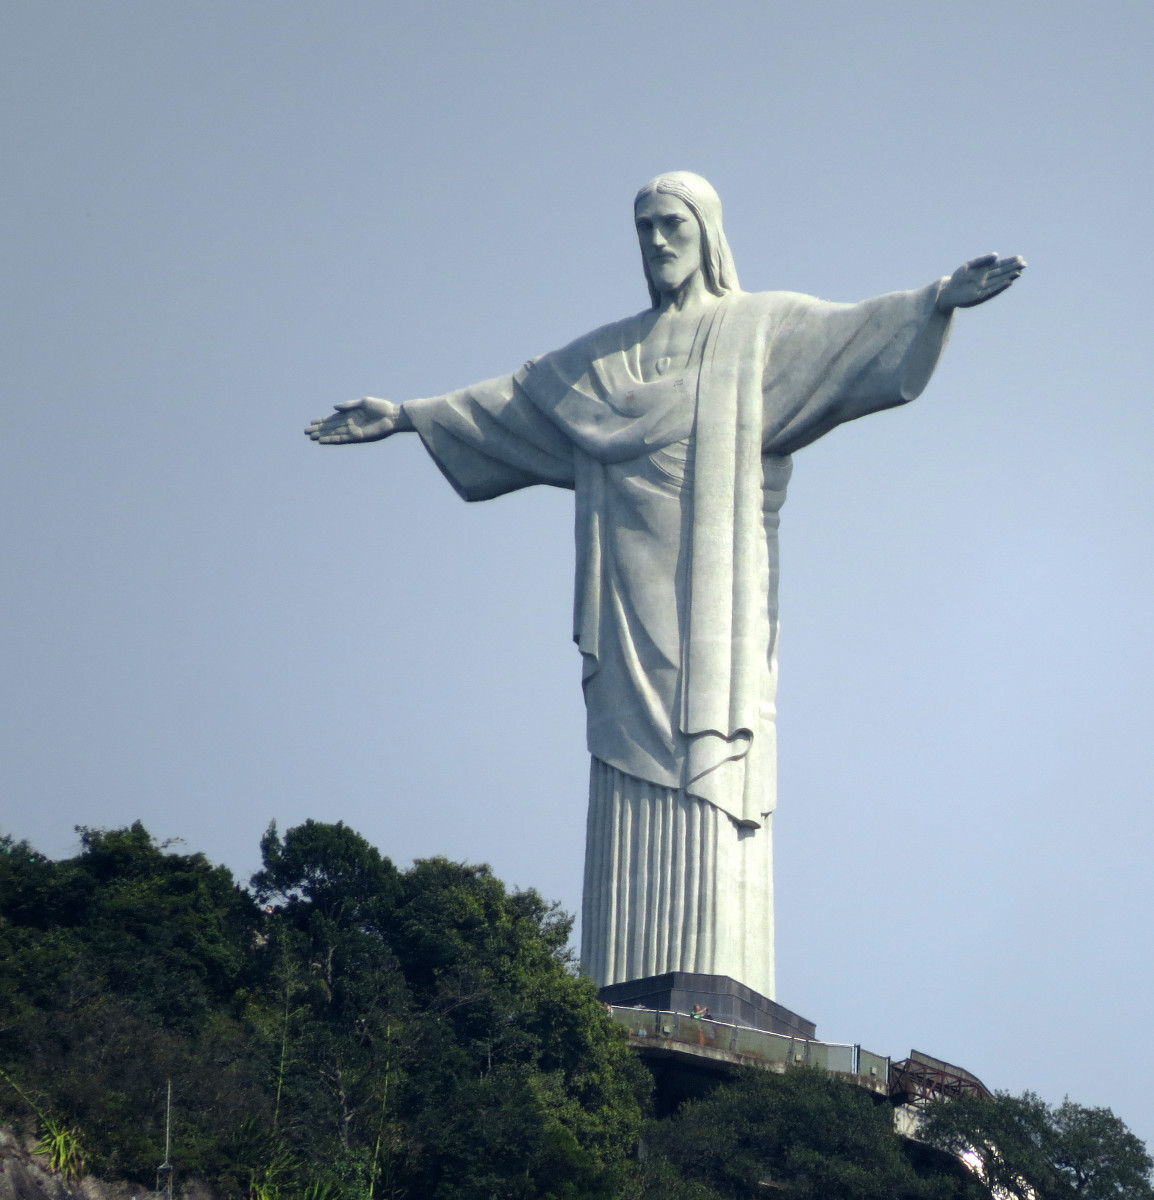 Cristo Redentor (Christ the Redeemer) atop Corcovado (the Hunchback) Mountain, in Rio de Janeiro was once the largest art deco statue in the Western Hemisphere.